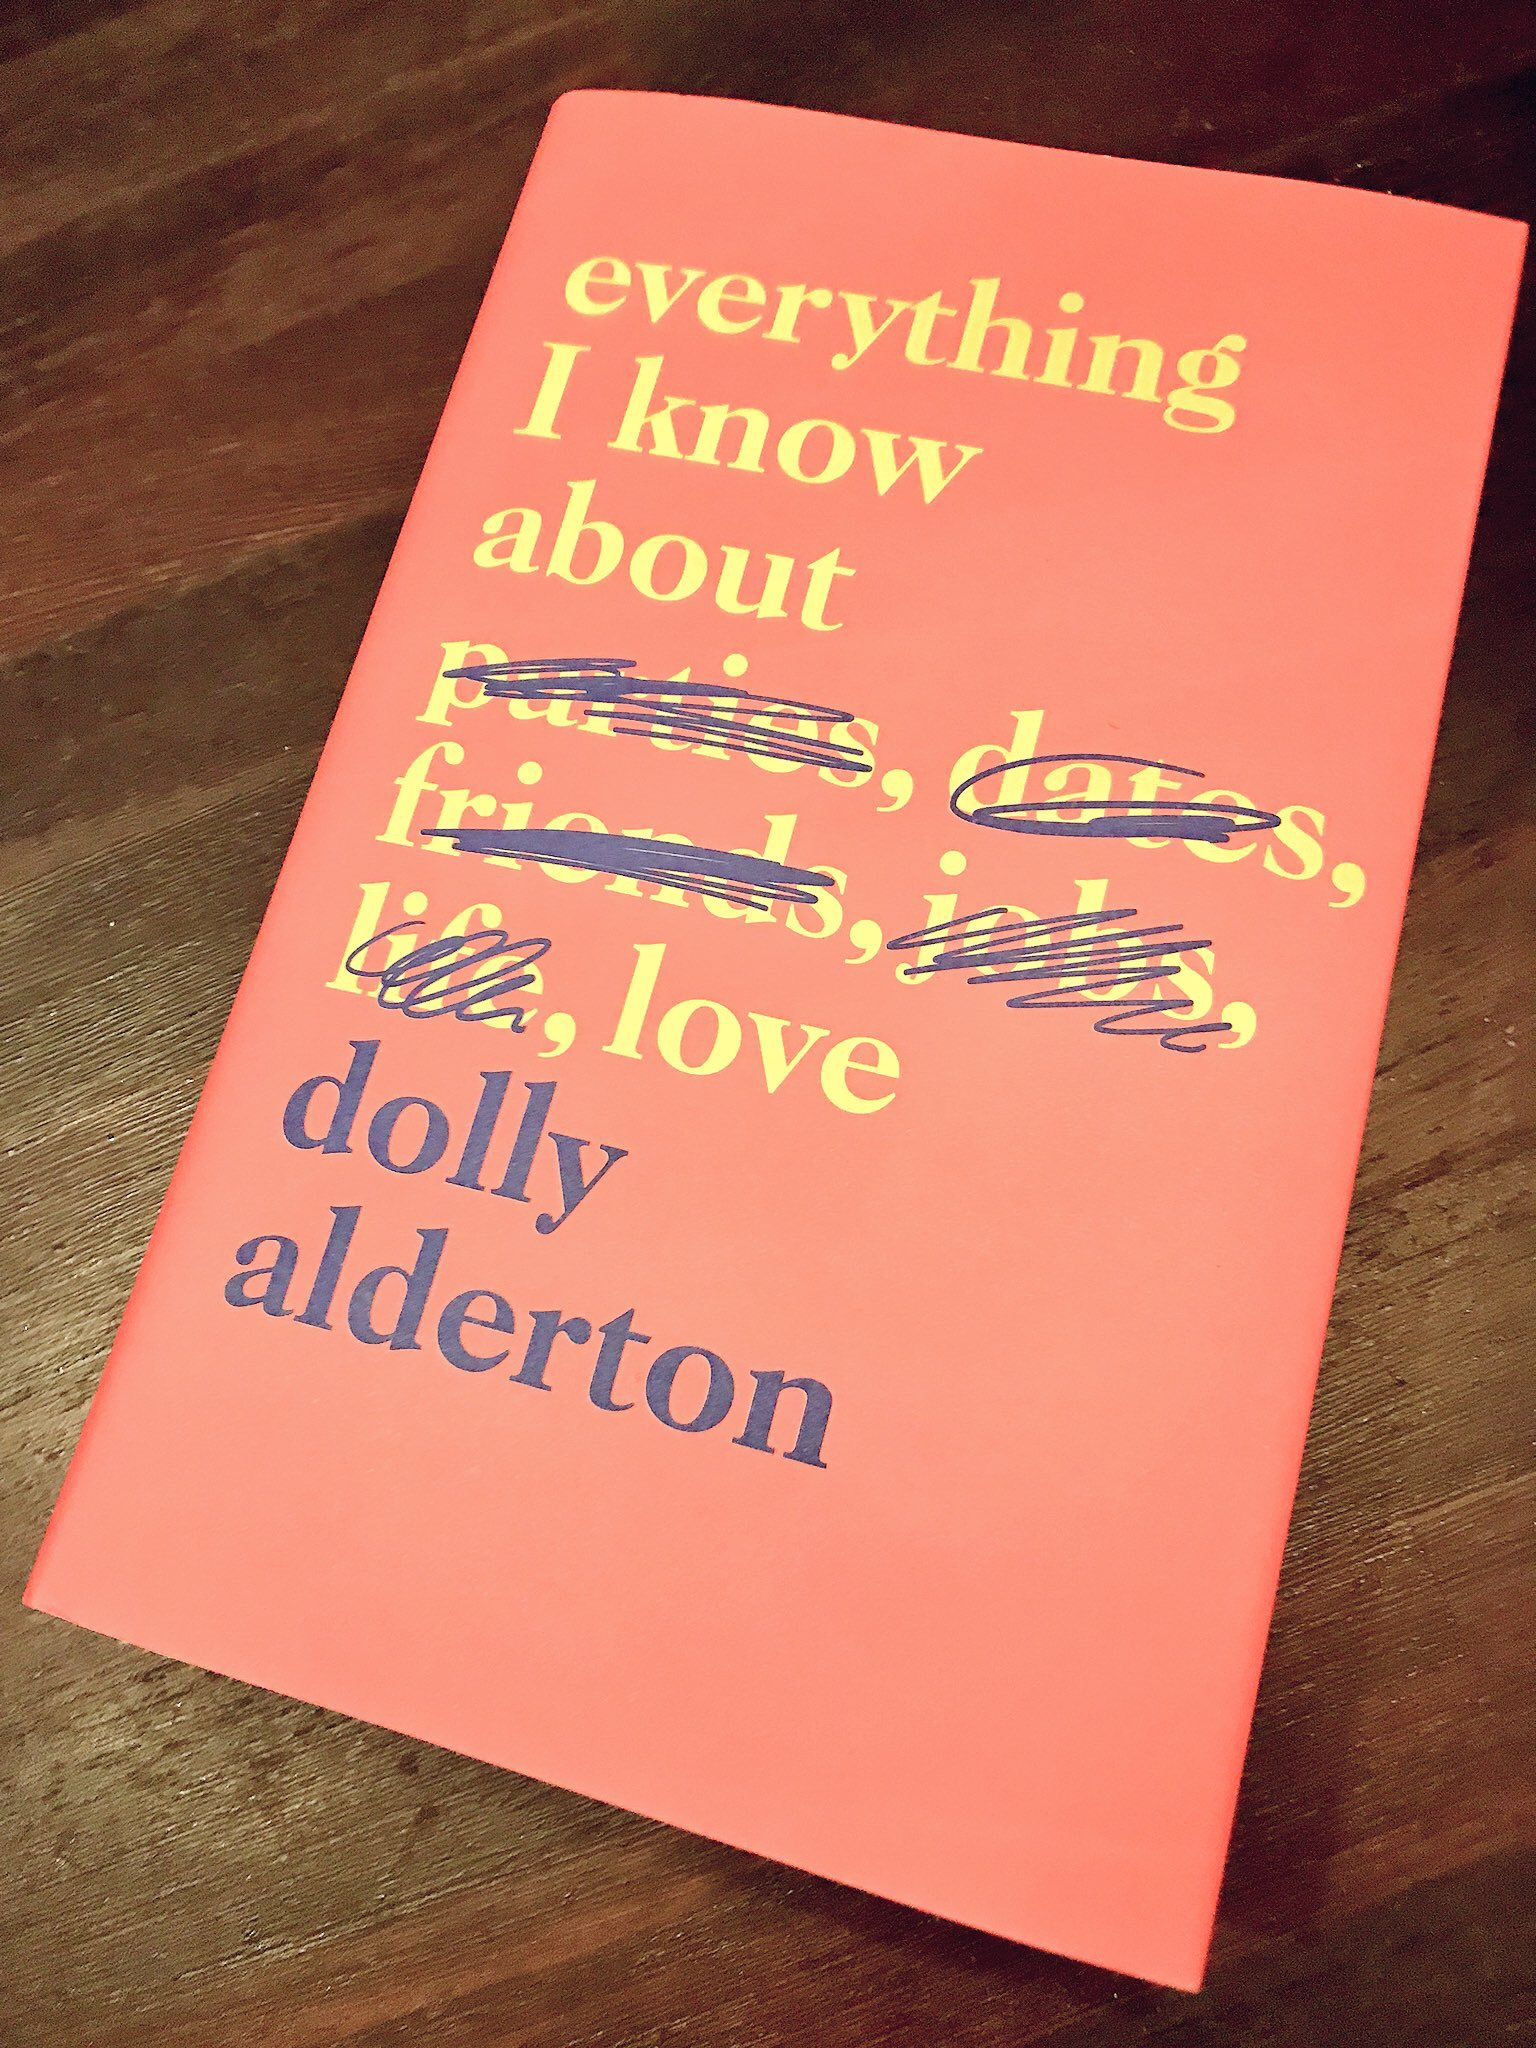 EVERYTHING I KNOW ABOUT LOVE: DOLLY ALDERTRON